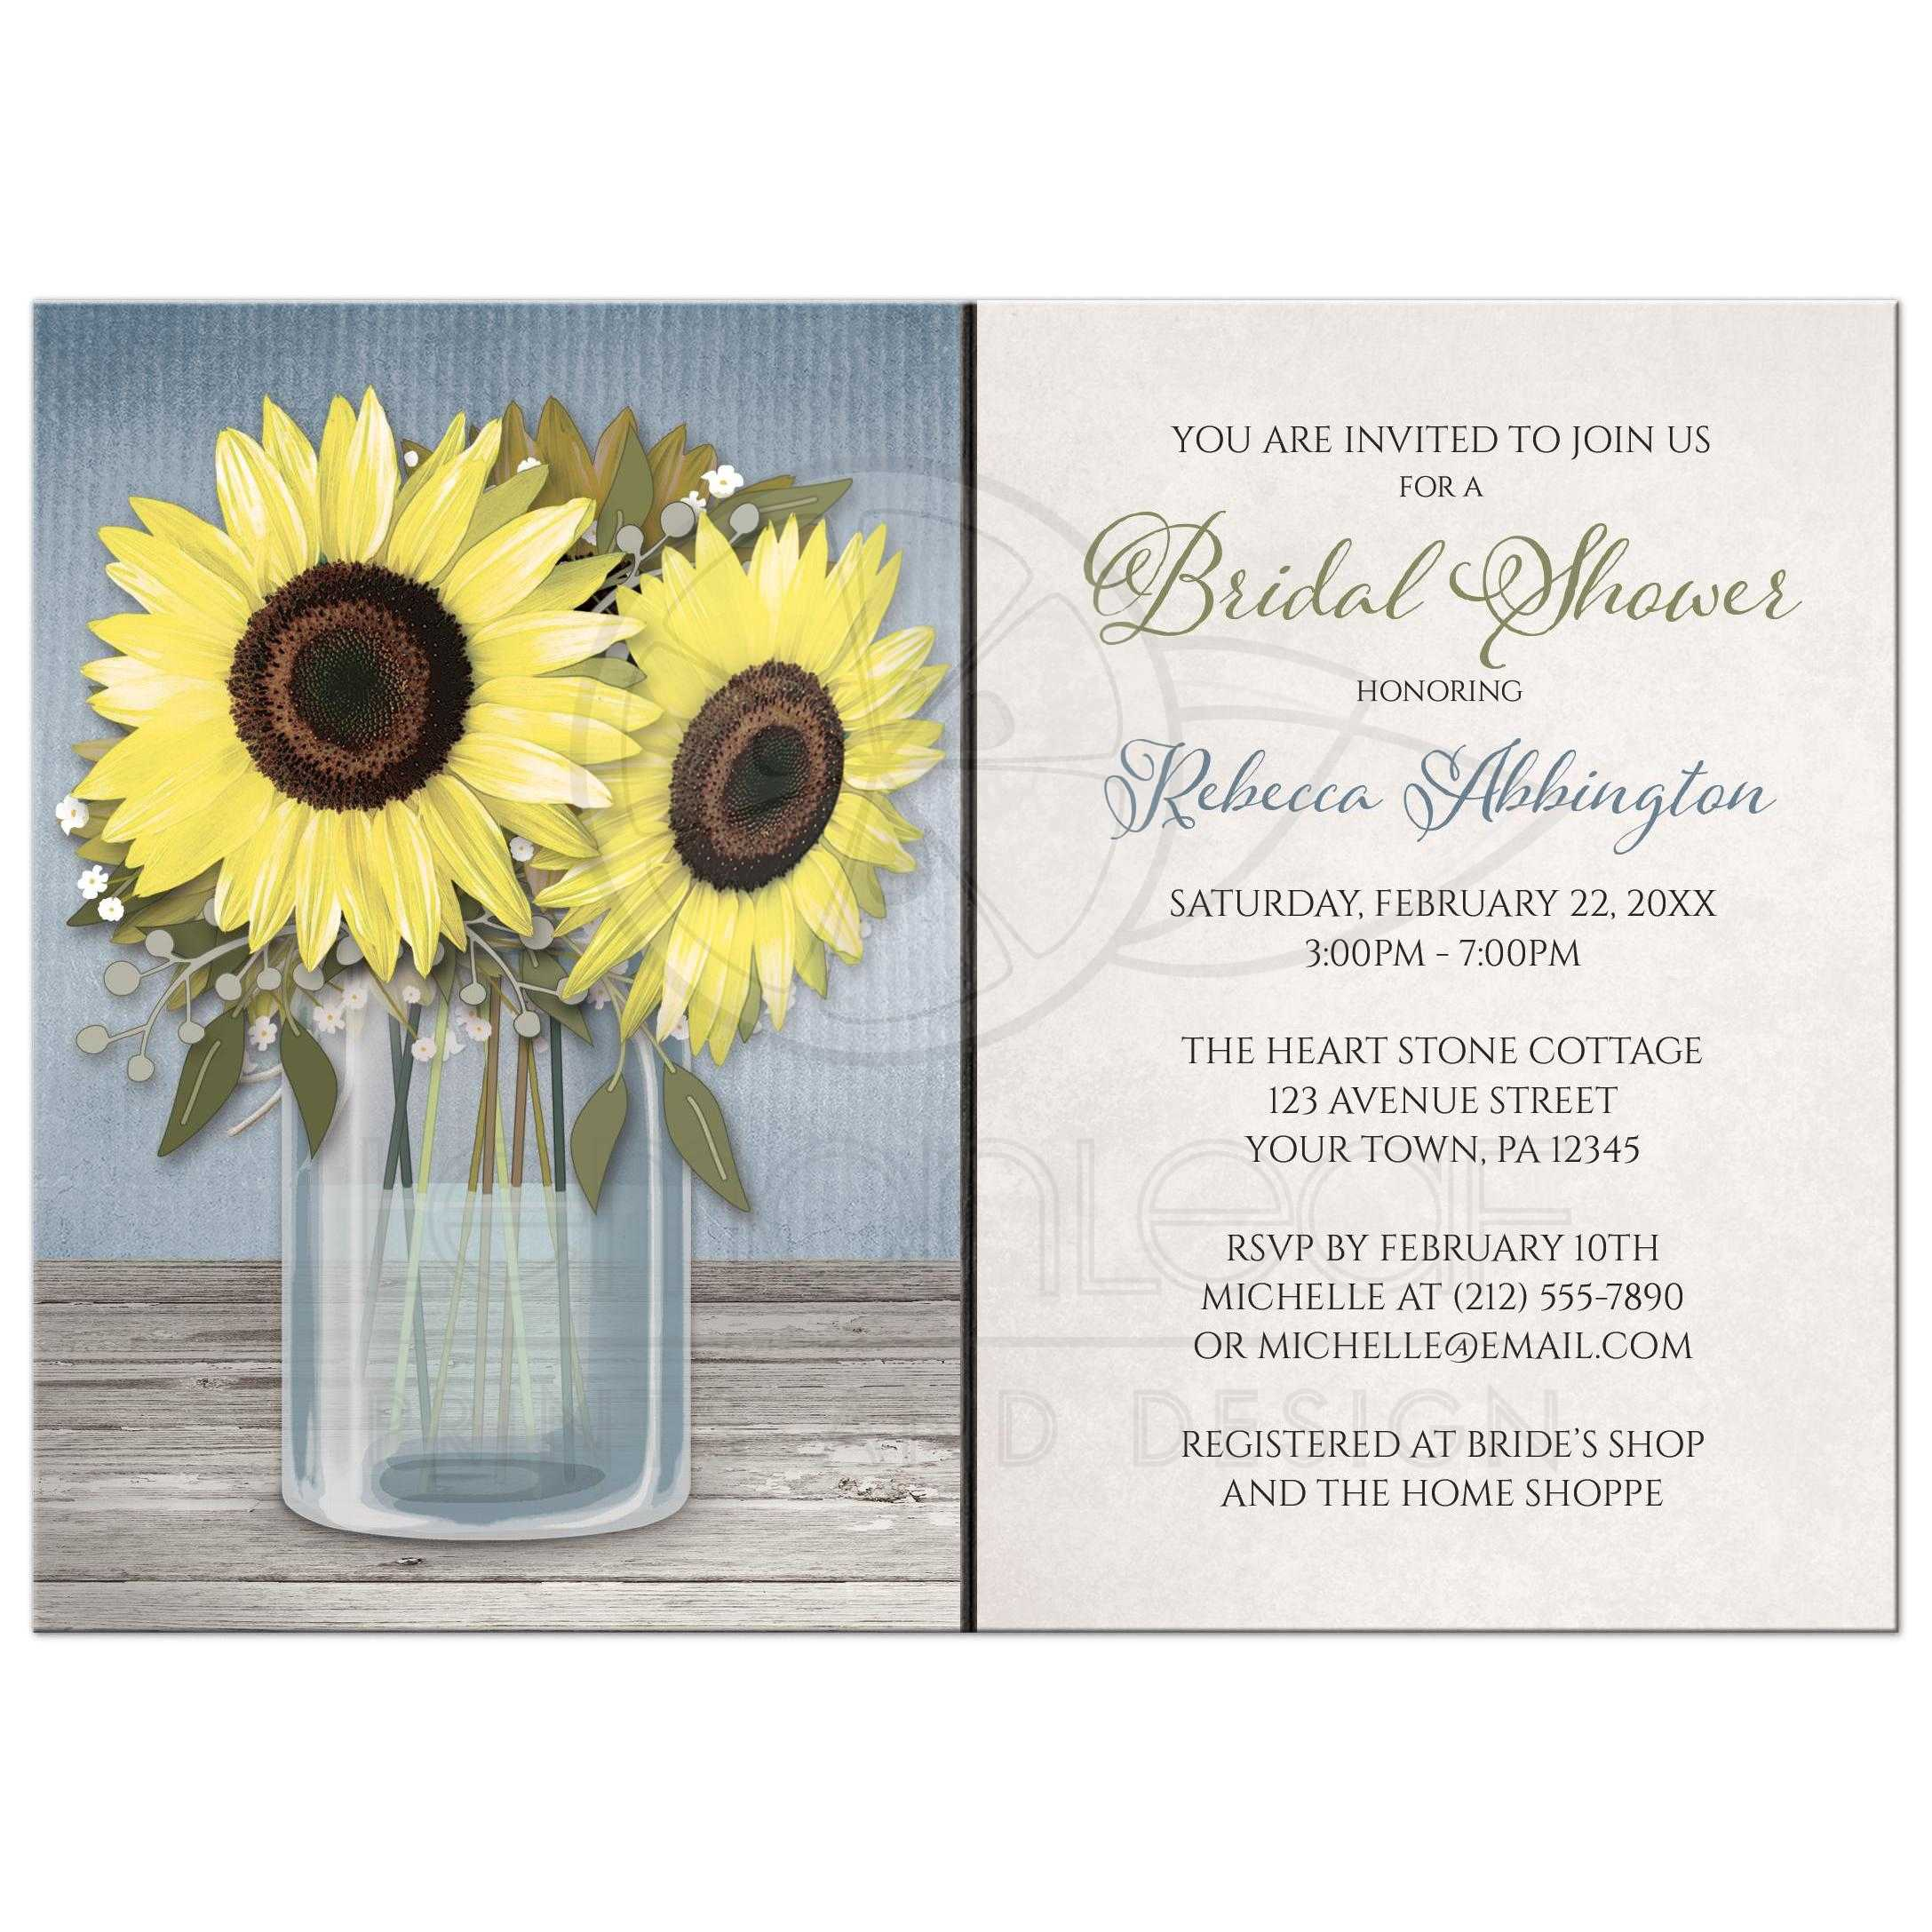 a37247995ce8 2243 Rectangle Sunflower Blue Mason Jar Rustic Bridal Shower Invitations.jpg t 1429231138